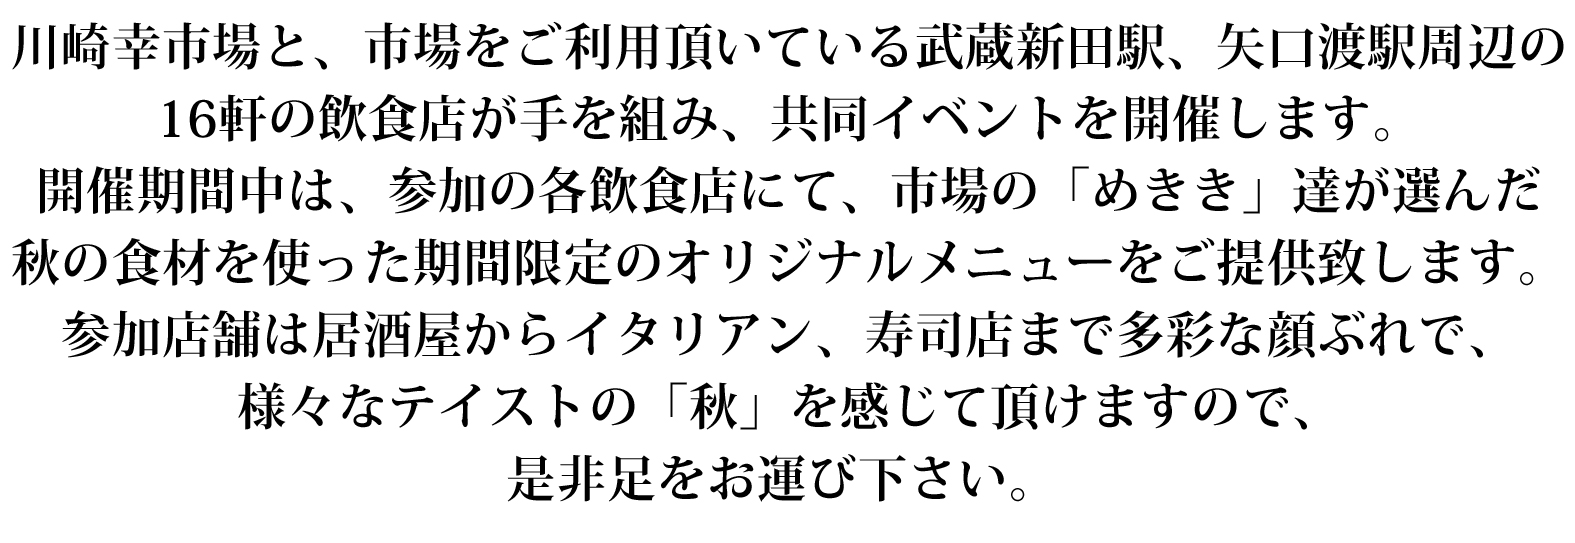 information-201610_text